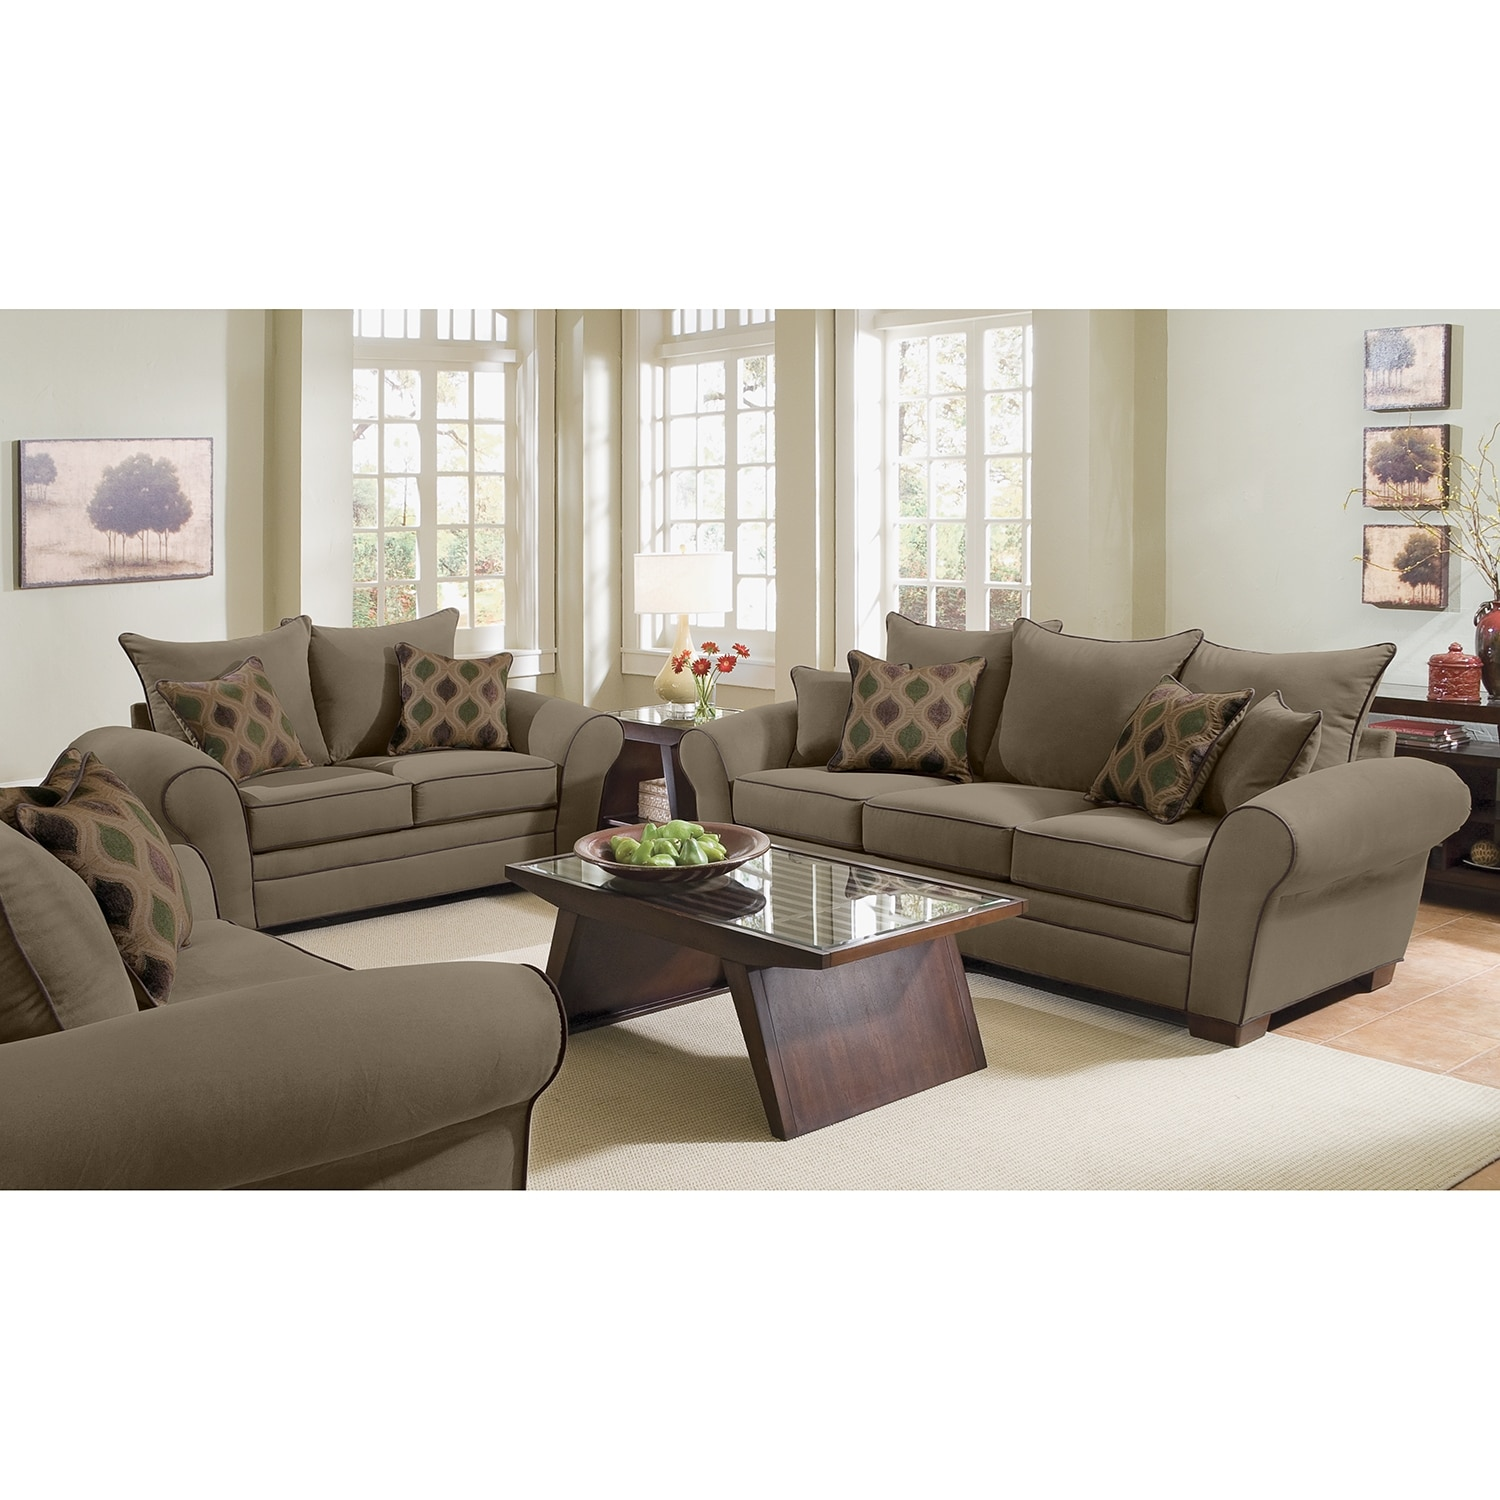 Rendezvous sofa and loveseat set olive value city furniture Living room loveseats